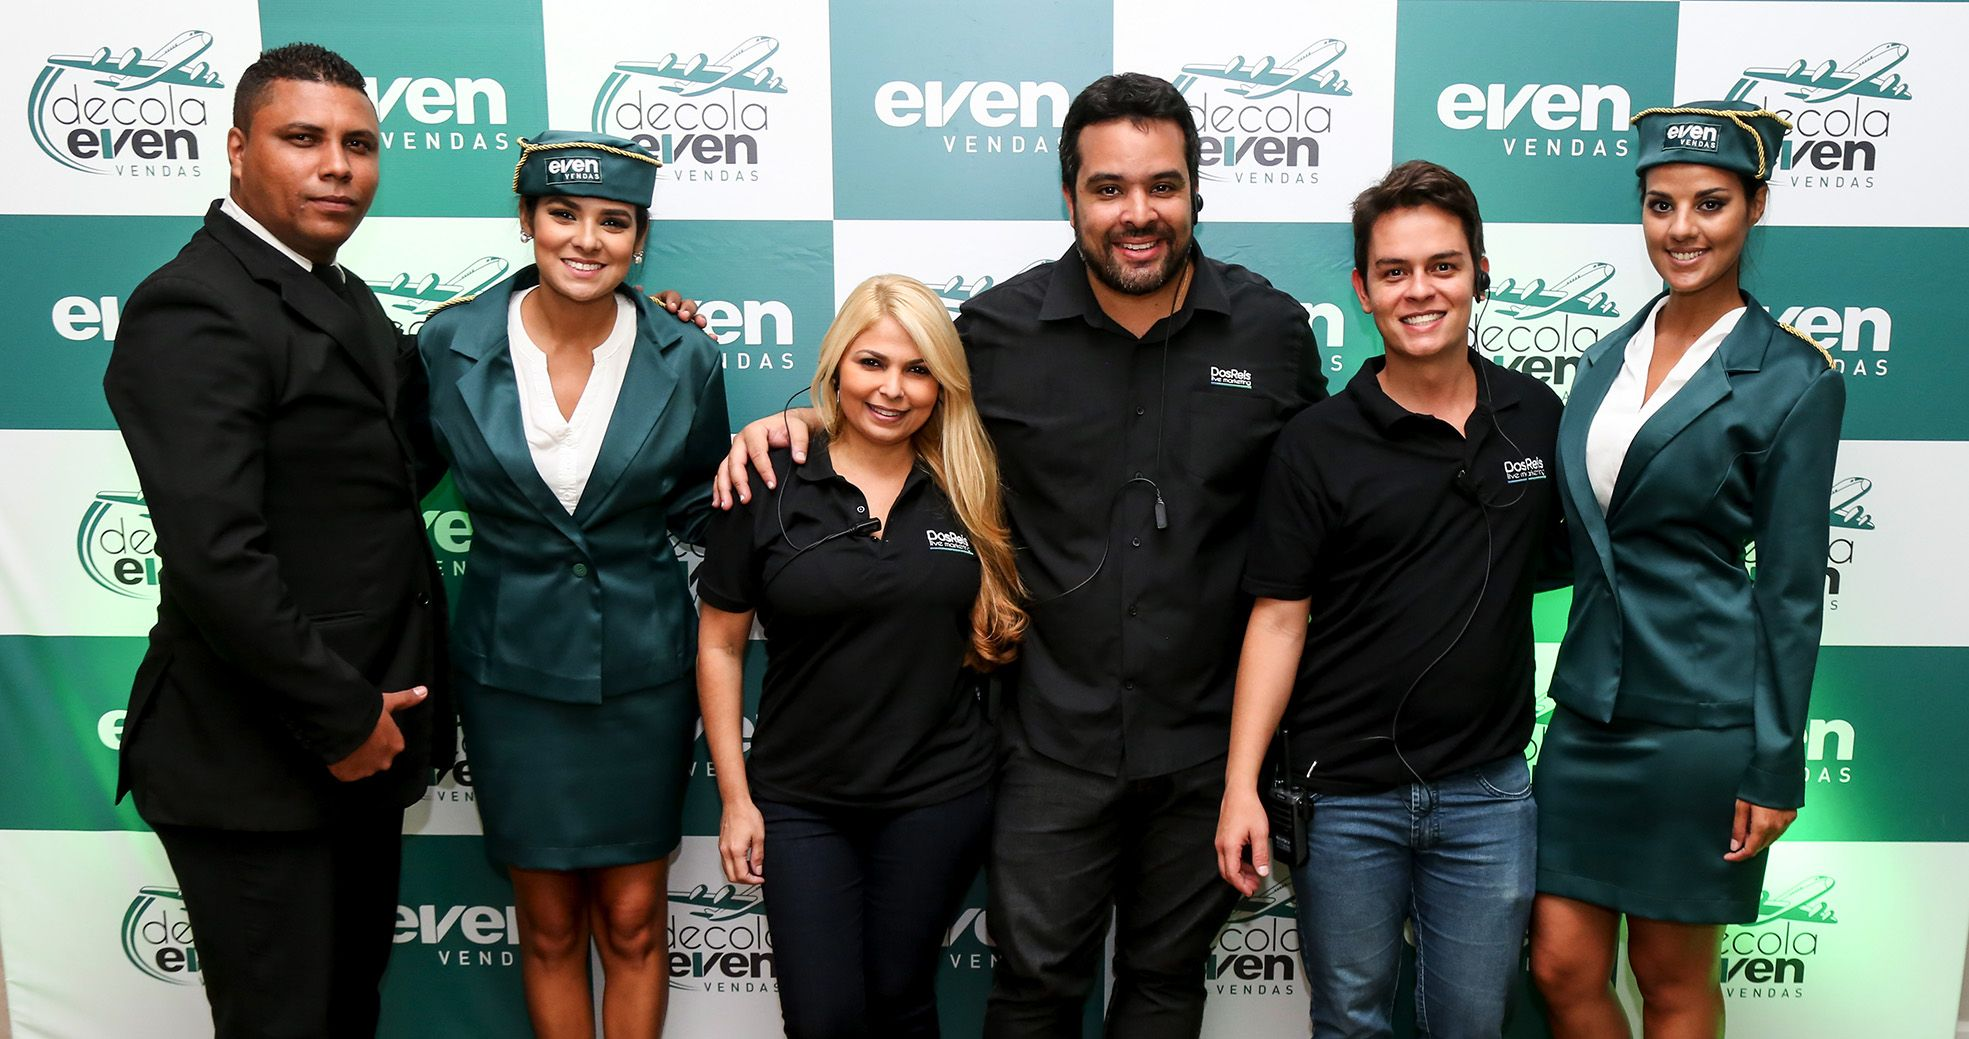 Evento Corporativo - Convenção Even Vendas - Agência DosReis Live Marketing